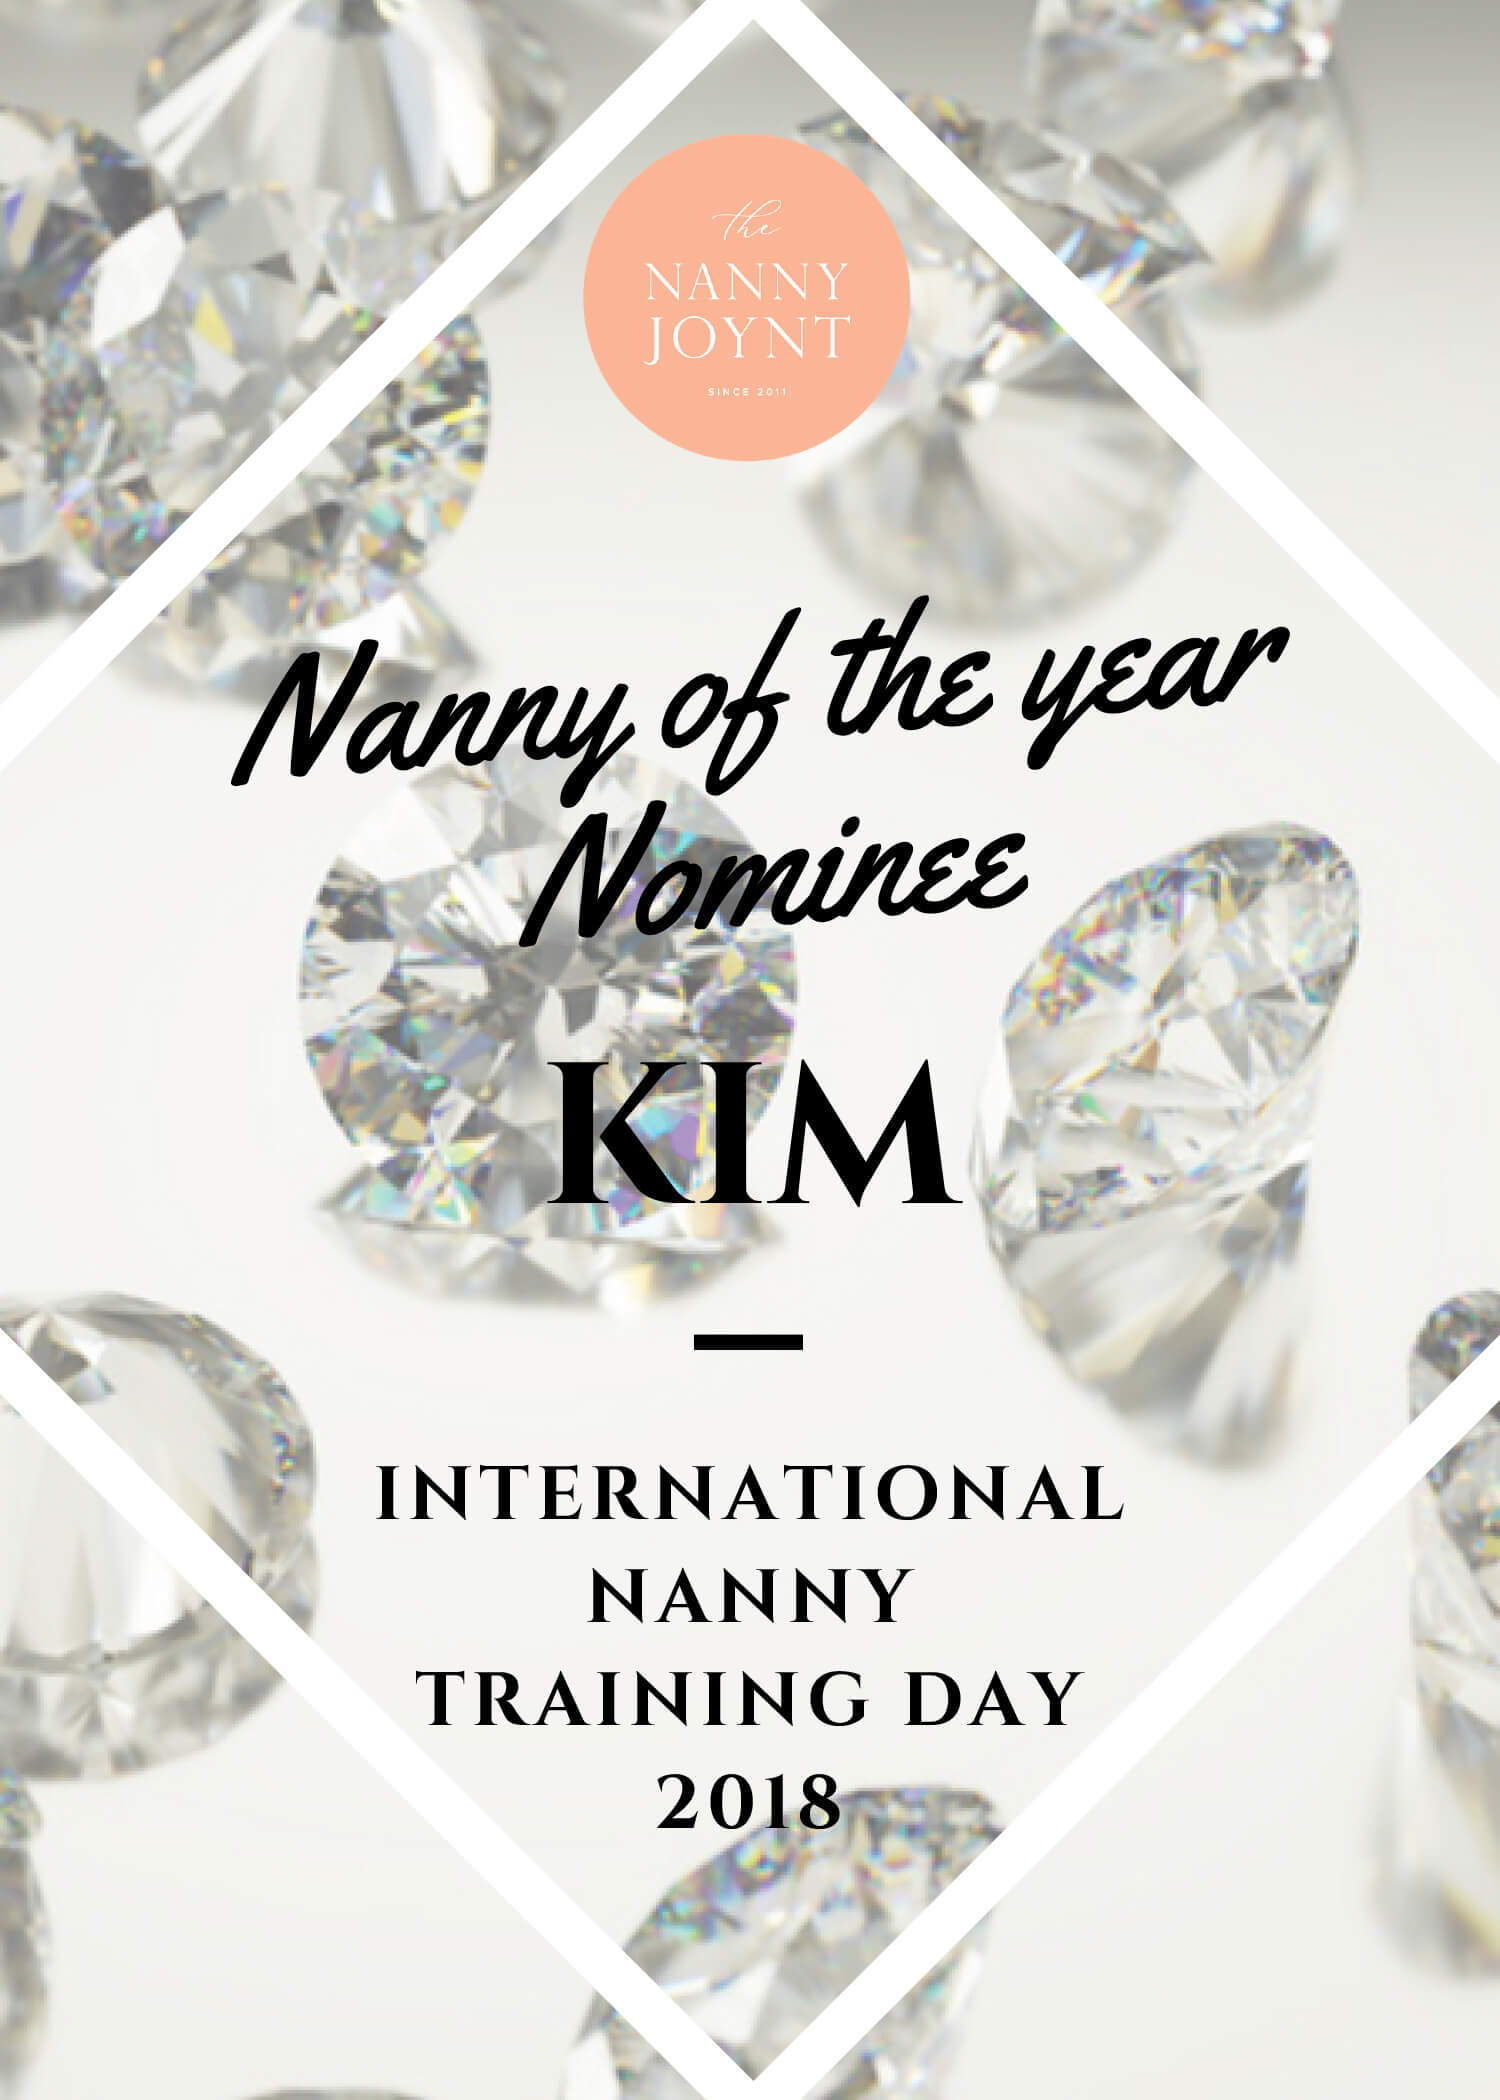 iNNTD Arizona Nanny Of The Year Nominee – Kimberly